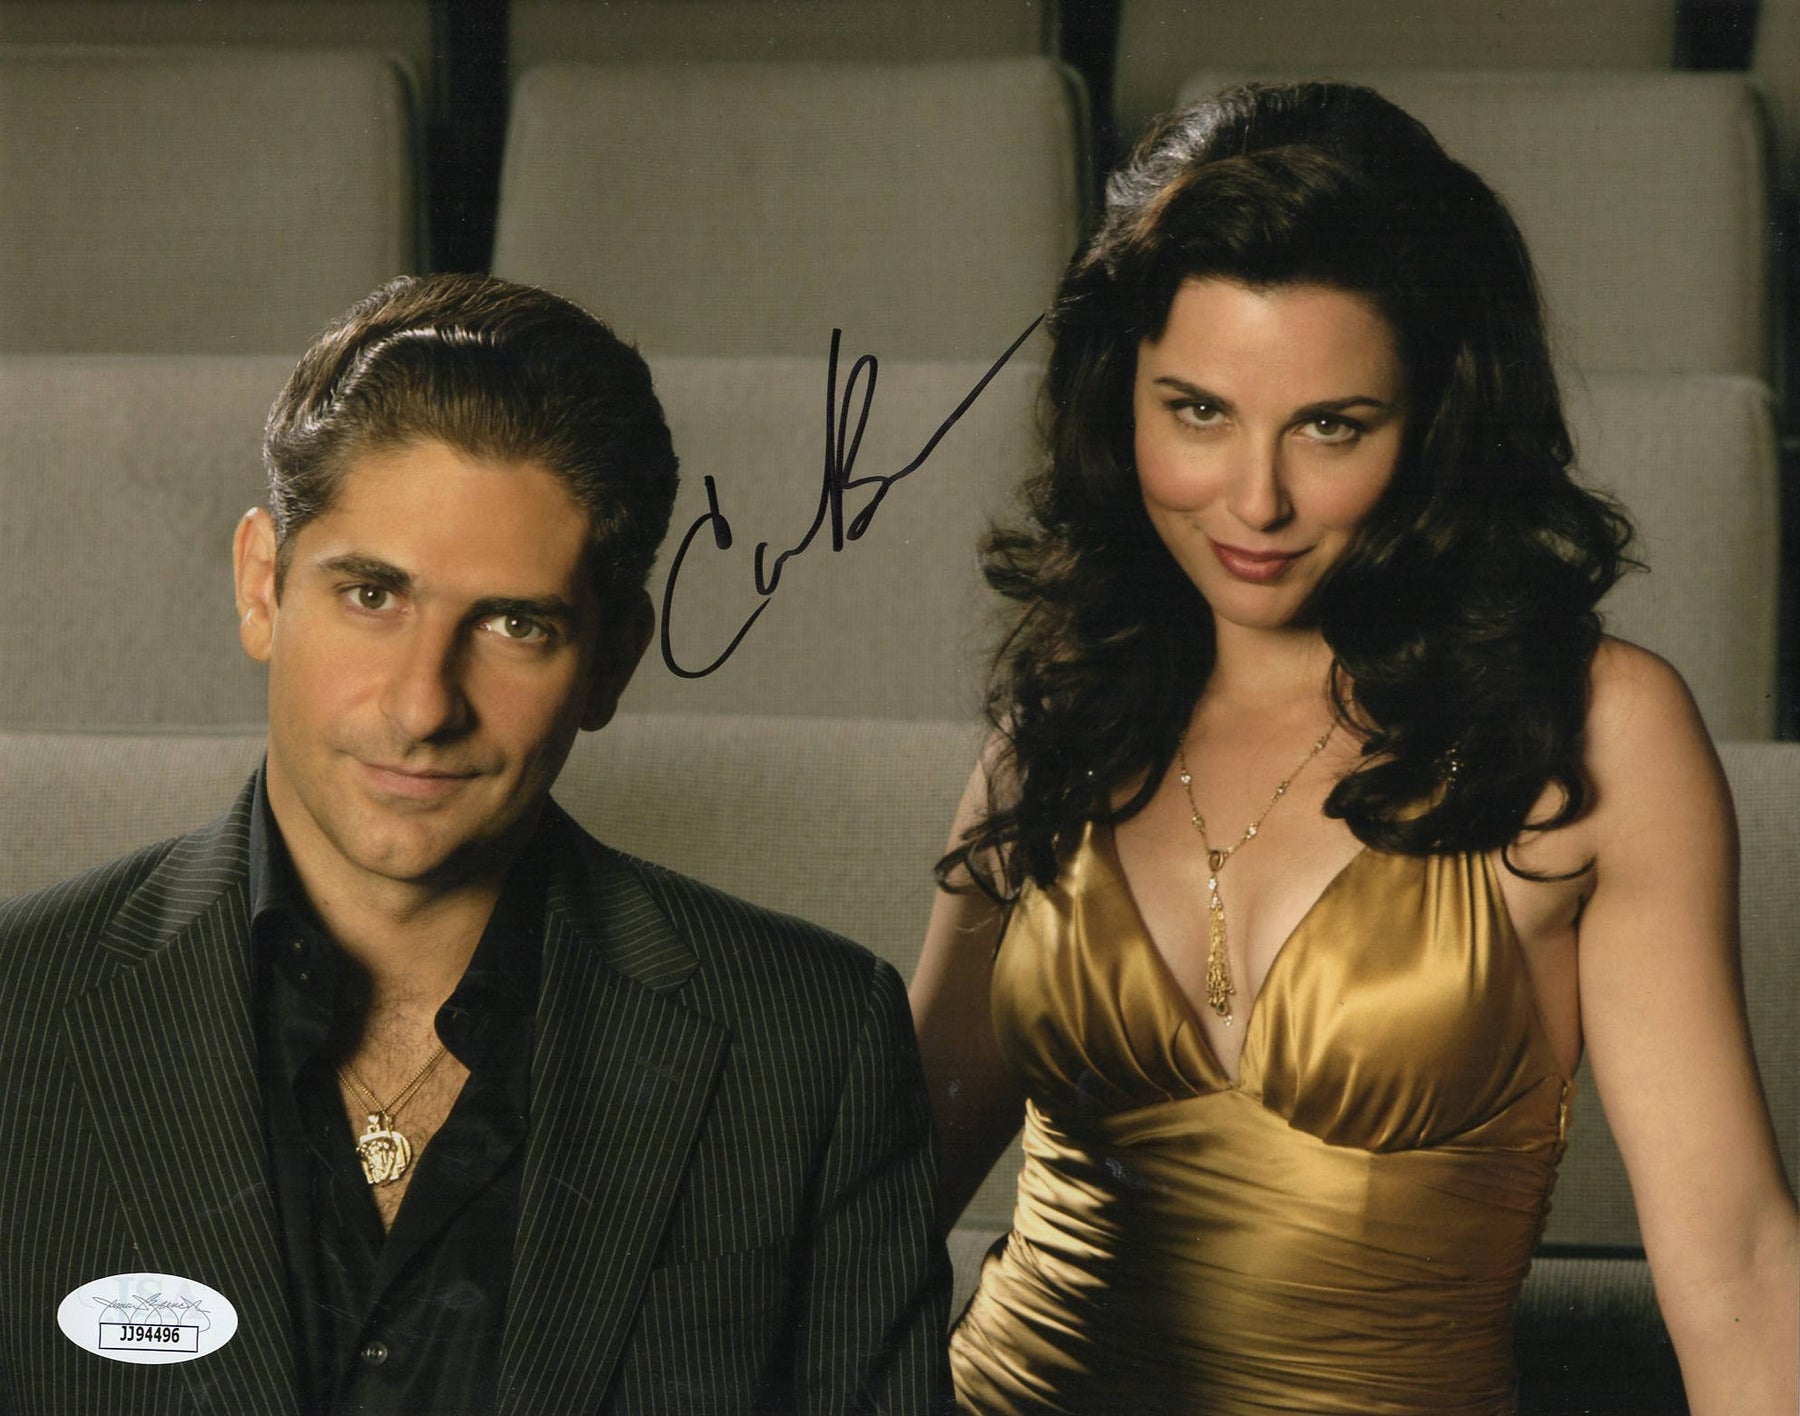 Cara Buono Autograph 8x10 Photo The Sopranos Signed JSA COA